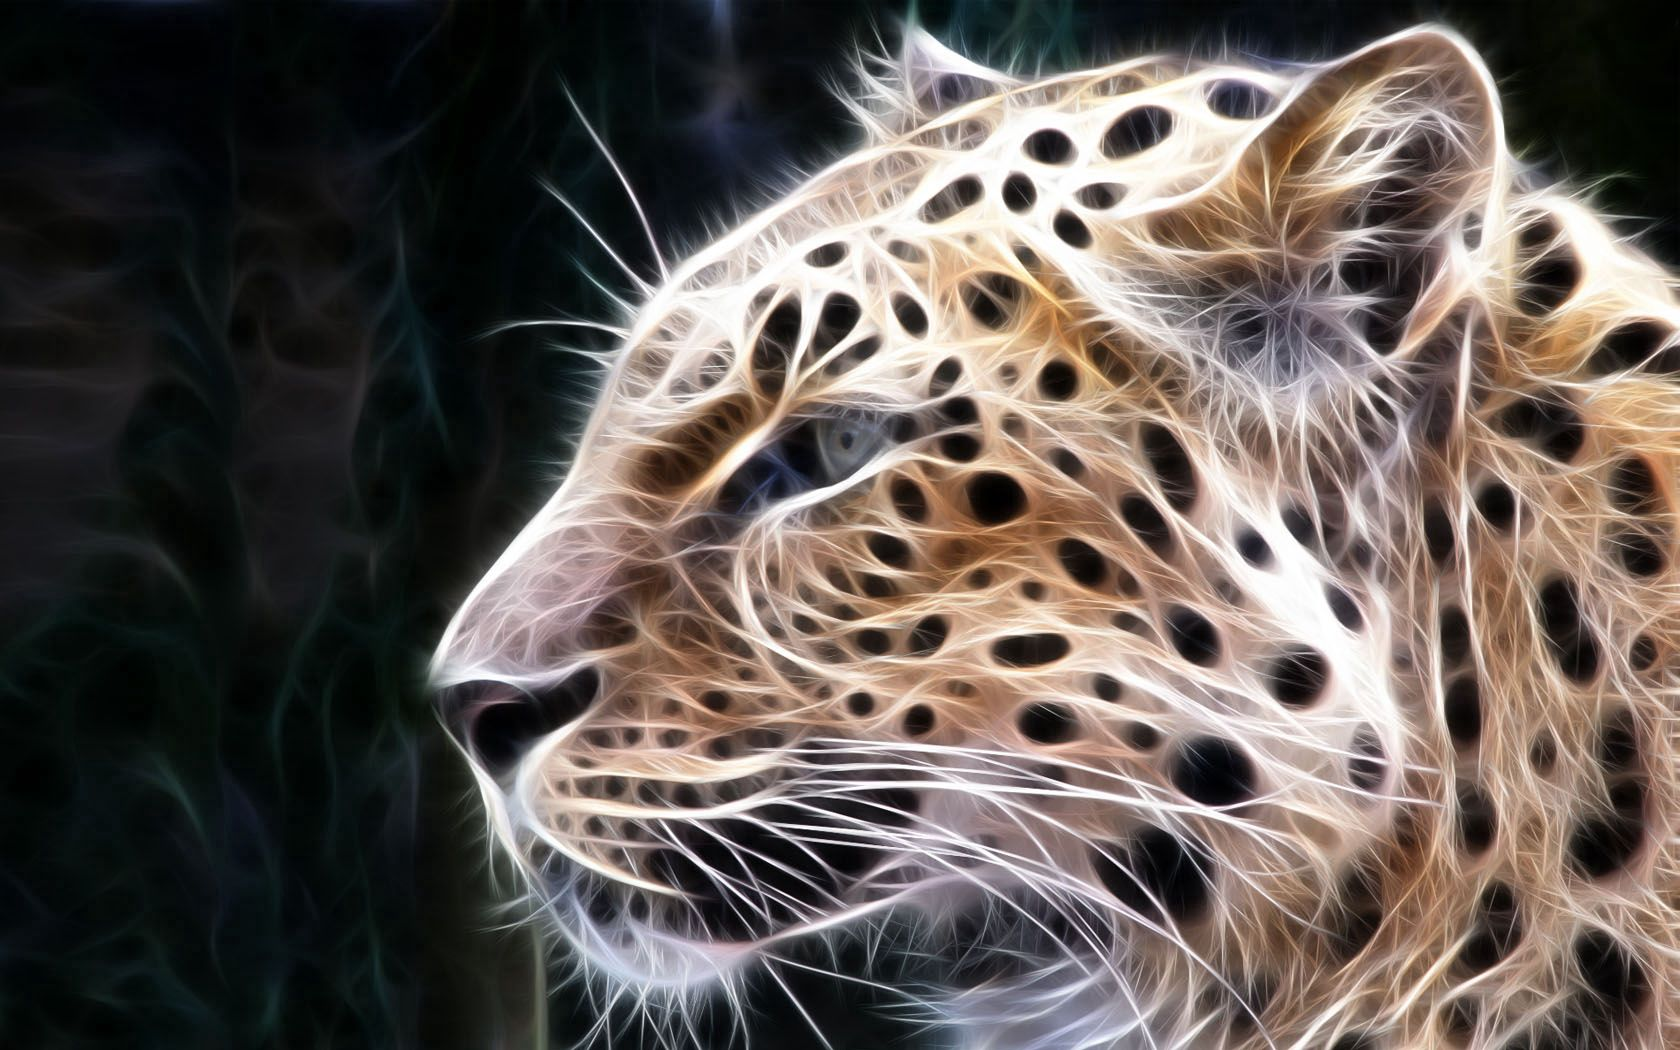 142220 download wallpaper Abstract, Leopard, Shine, Light, Lines, Glow screensavers and pictures for free